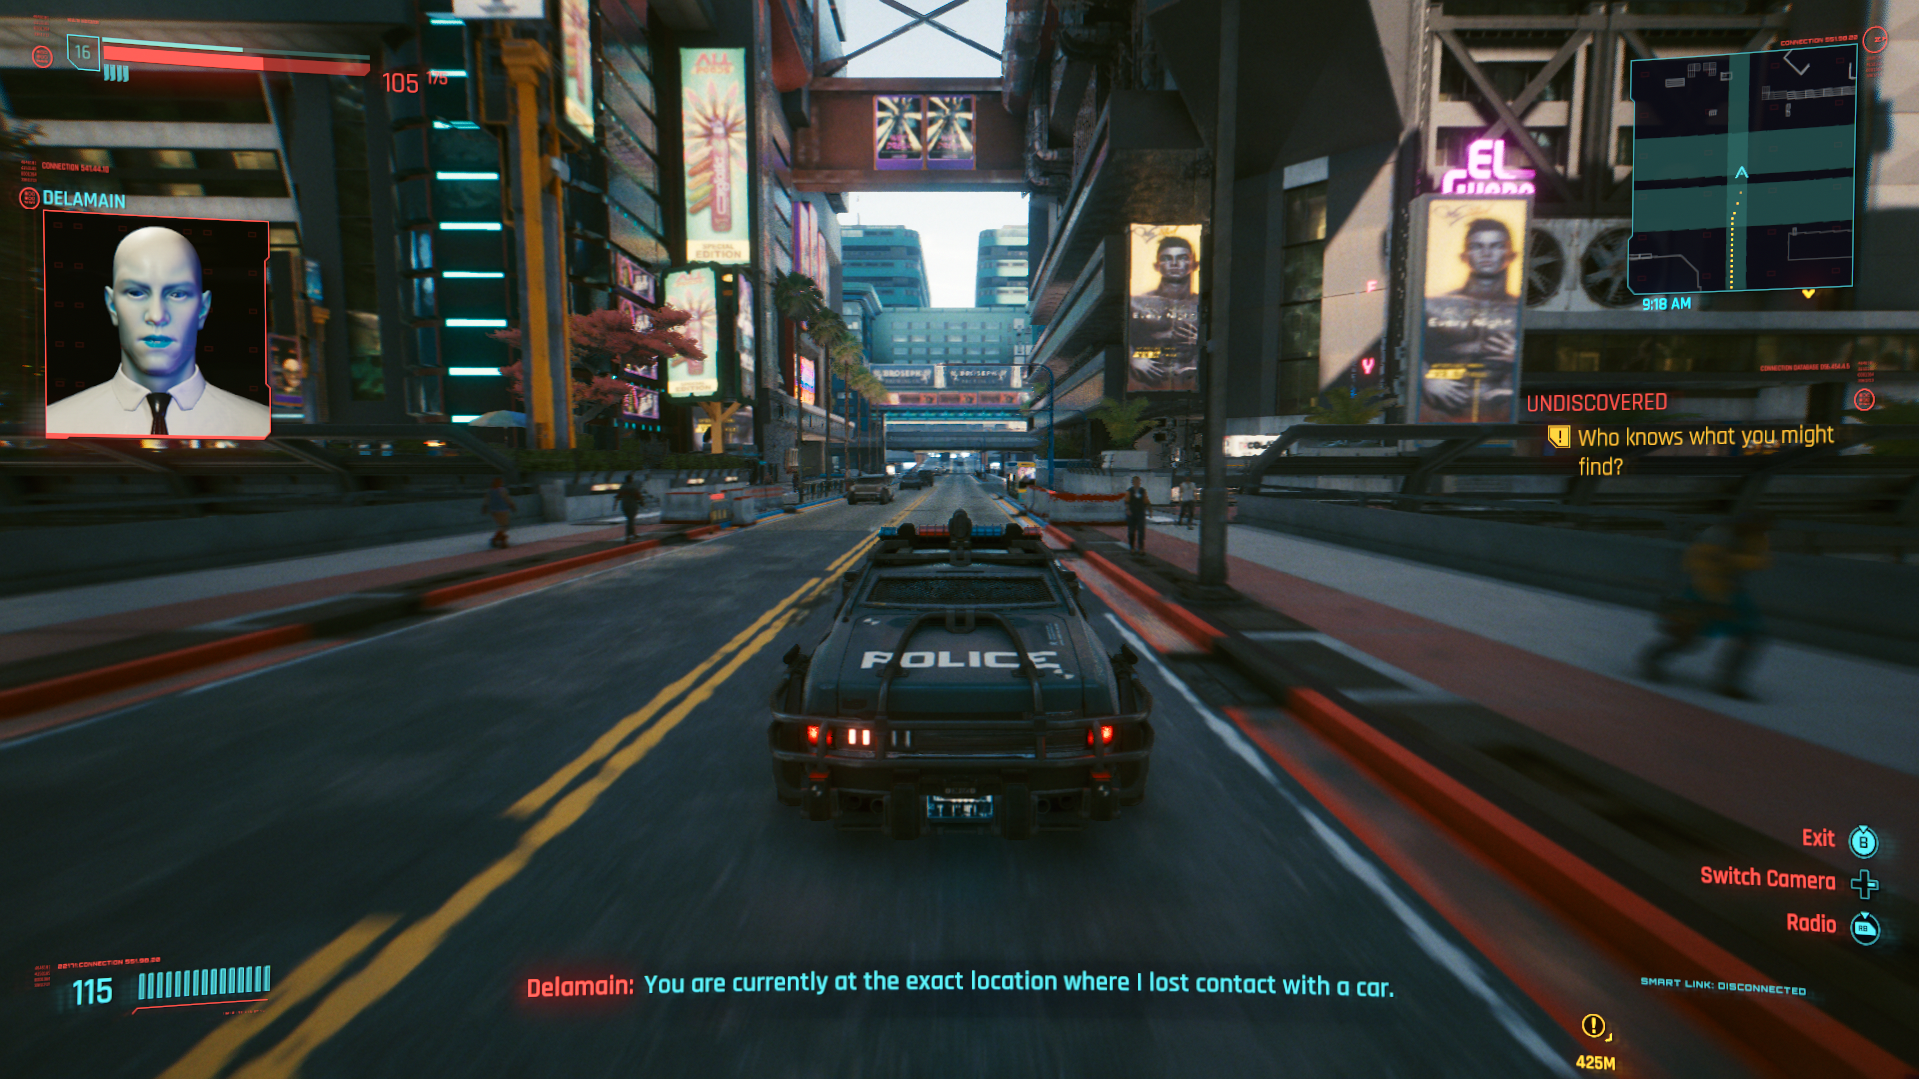 cyberpunk_2077_splash Cyberpunk 2077 - PC (Steam) Review